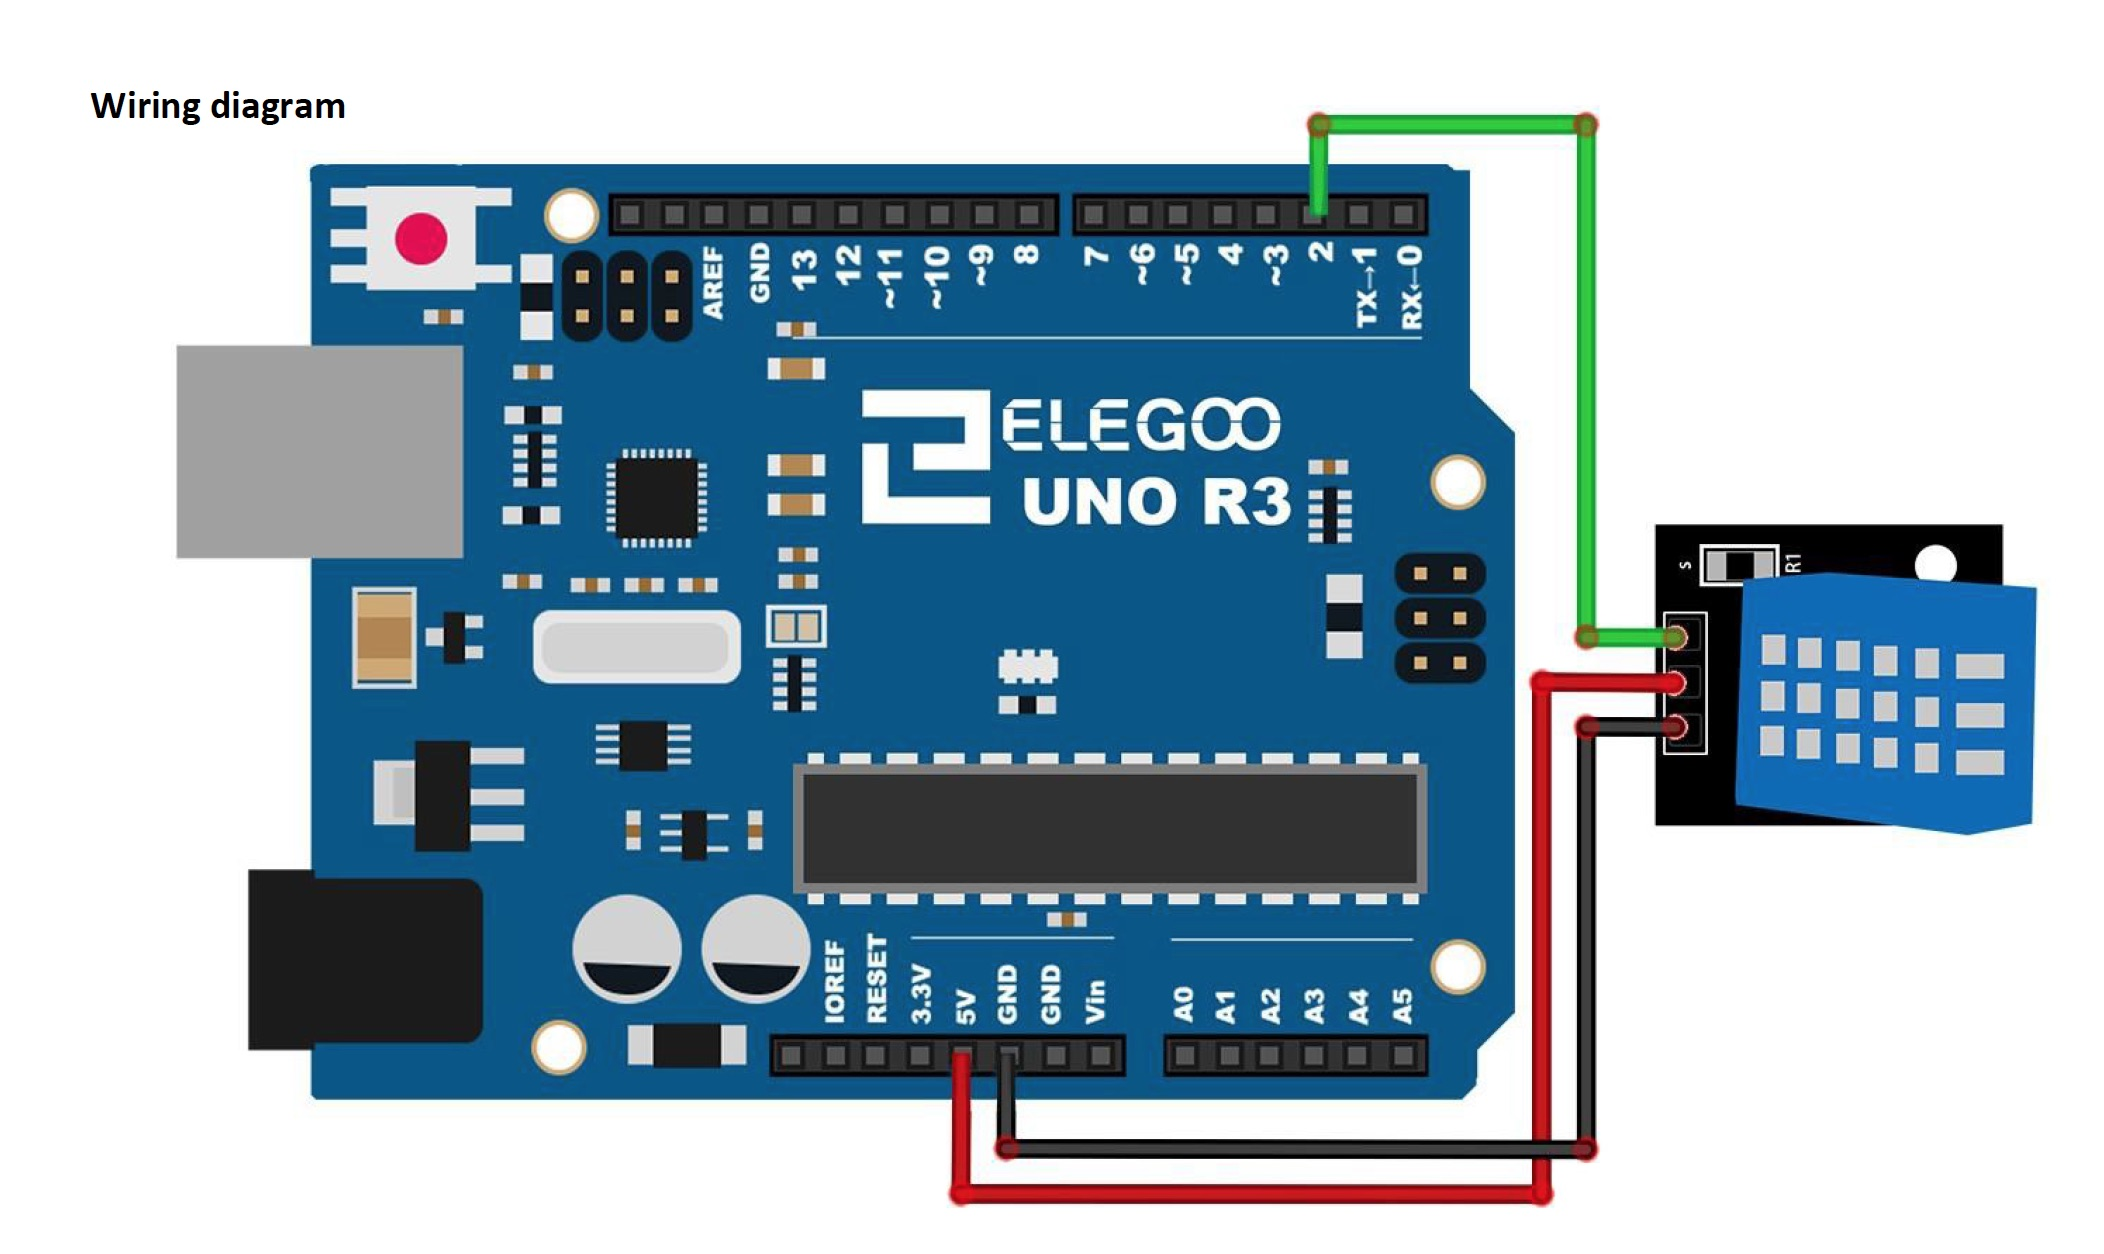 The Most Complete Arduino Uno R3 Starter Kit From Elegoo - Great Stem Gift